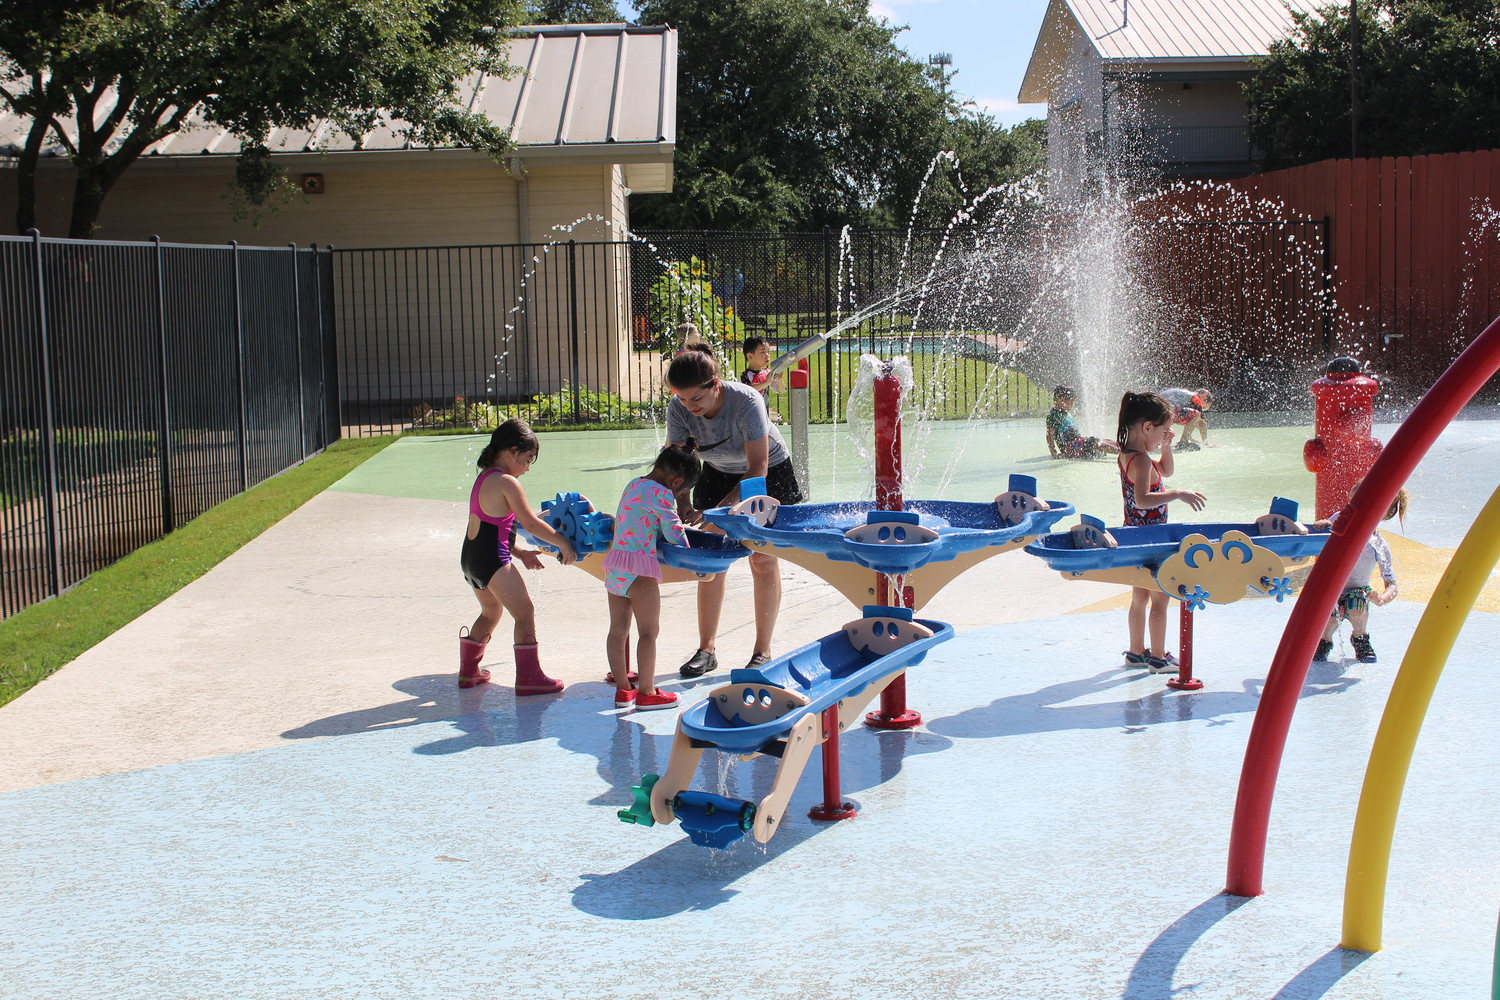 Students enjoy playing at the splashpad at Bluebonnet School of Cedar Park, which recently obtained its eighth accreditation.